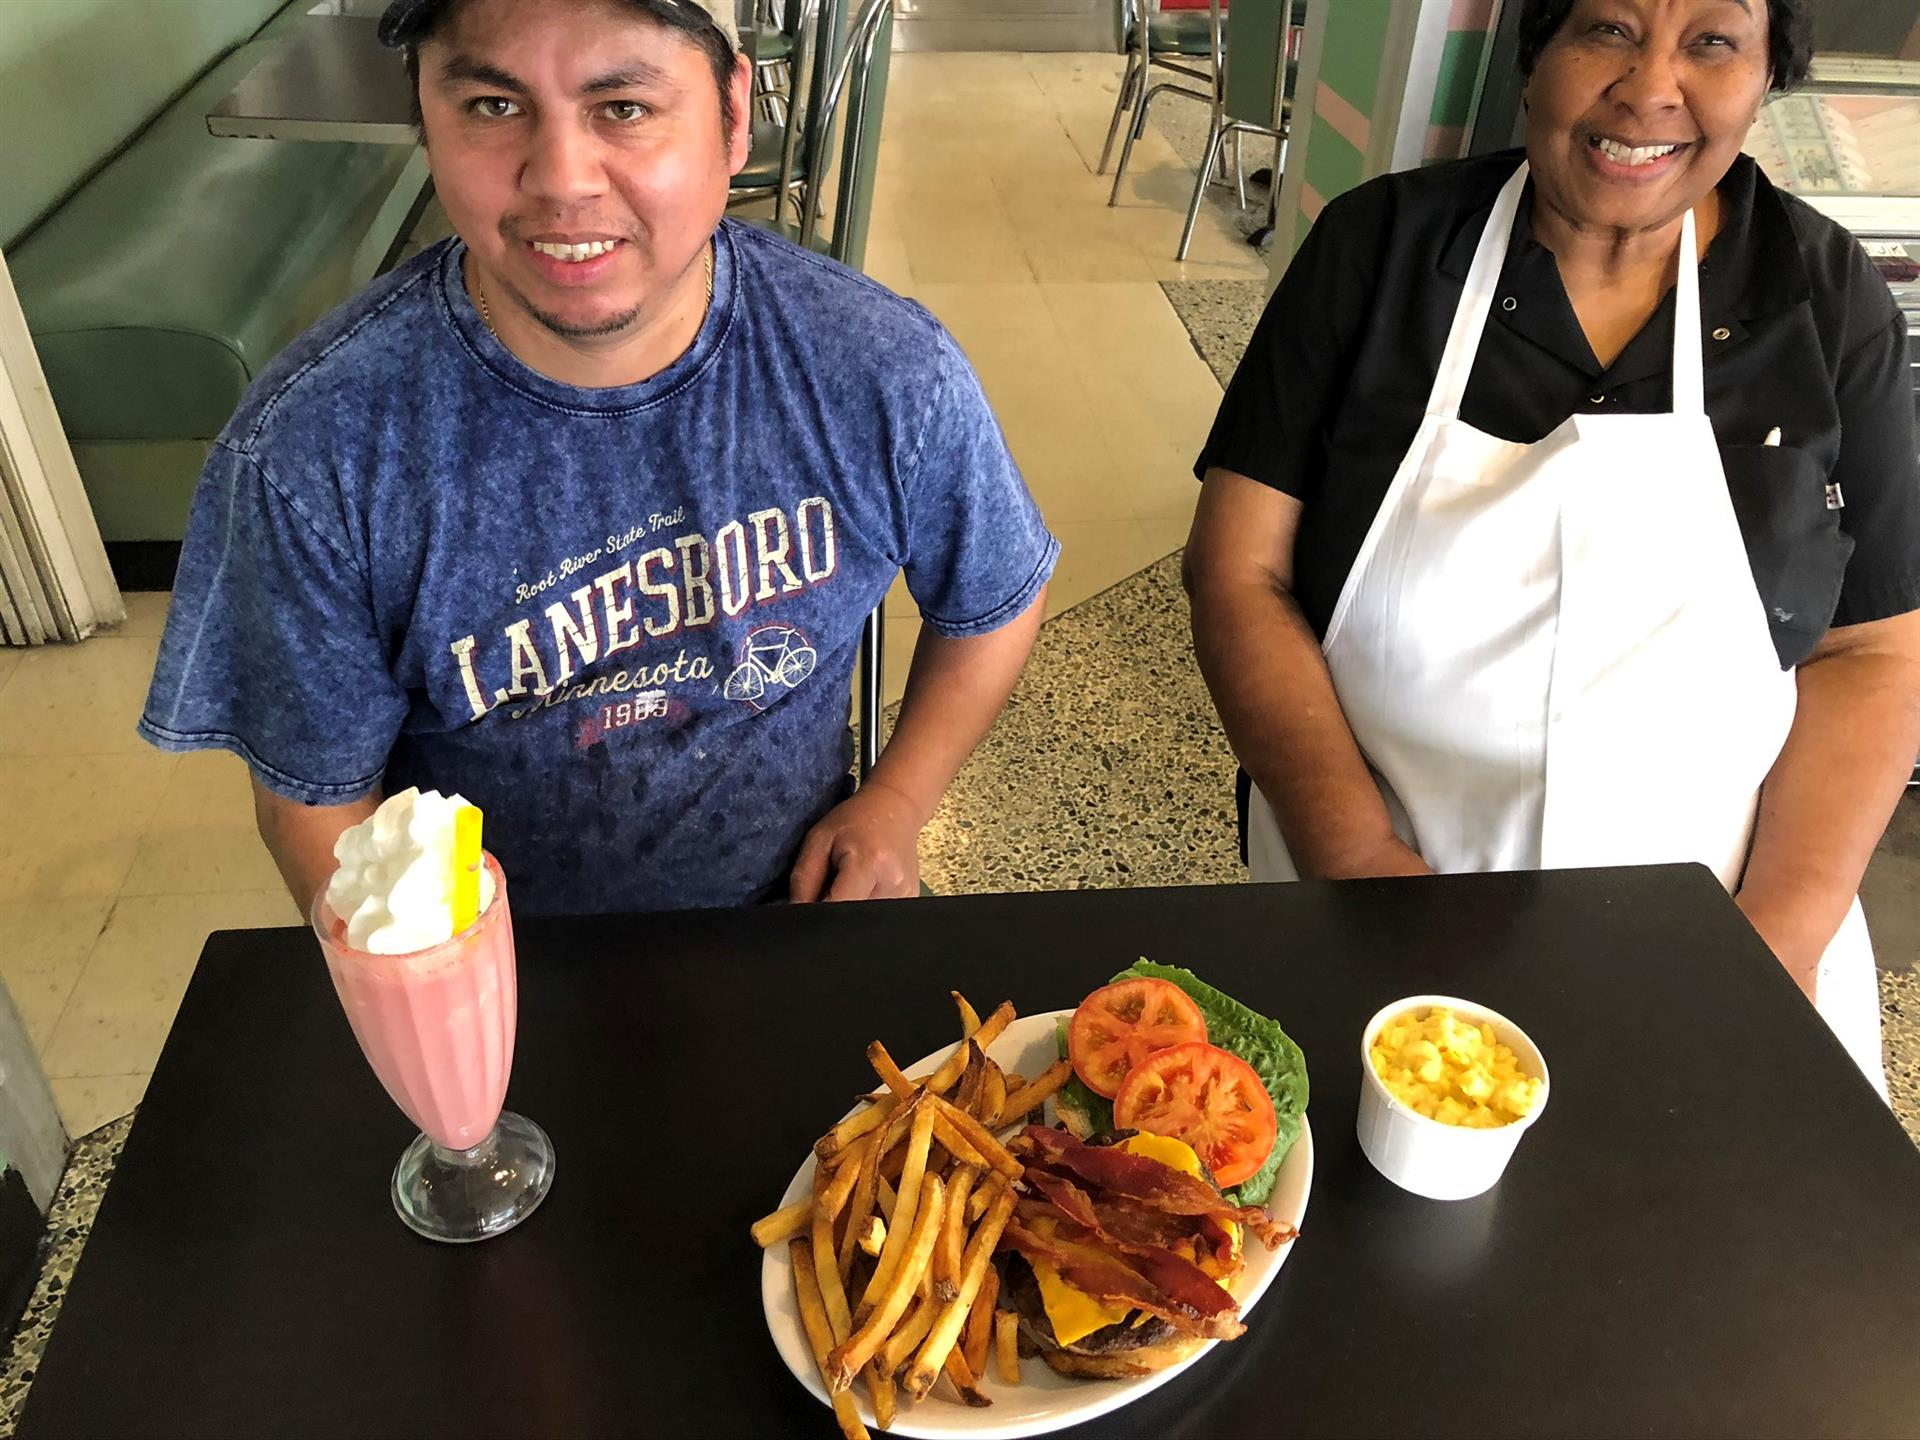 2 employees with a burger, fries and shake